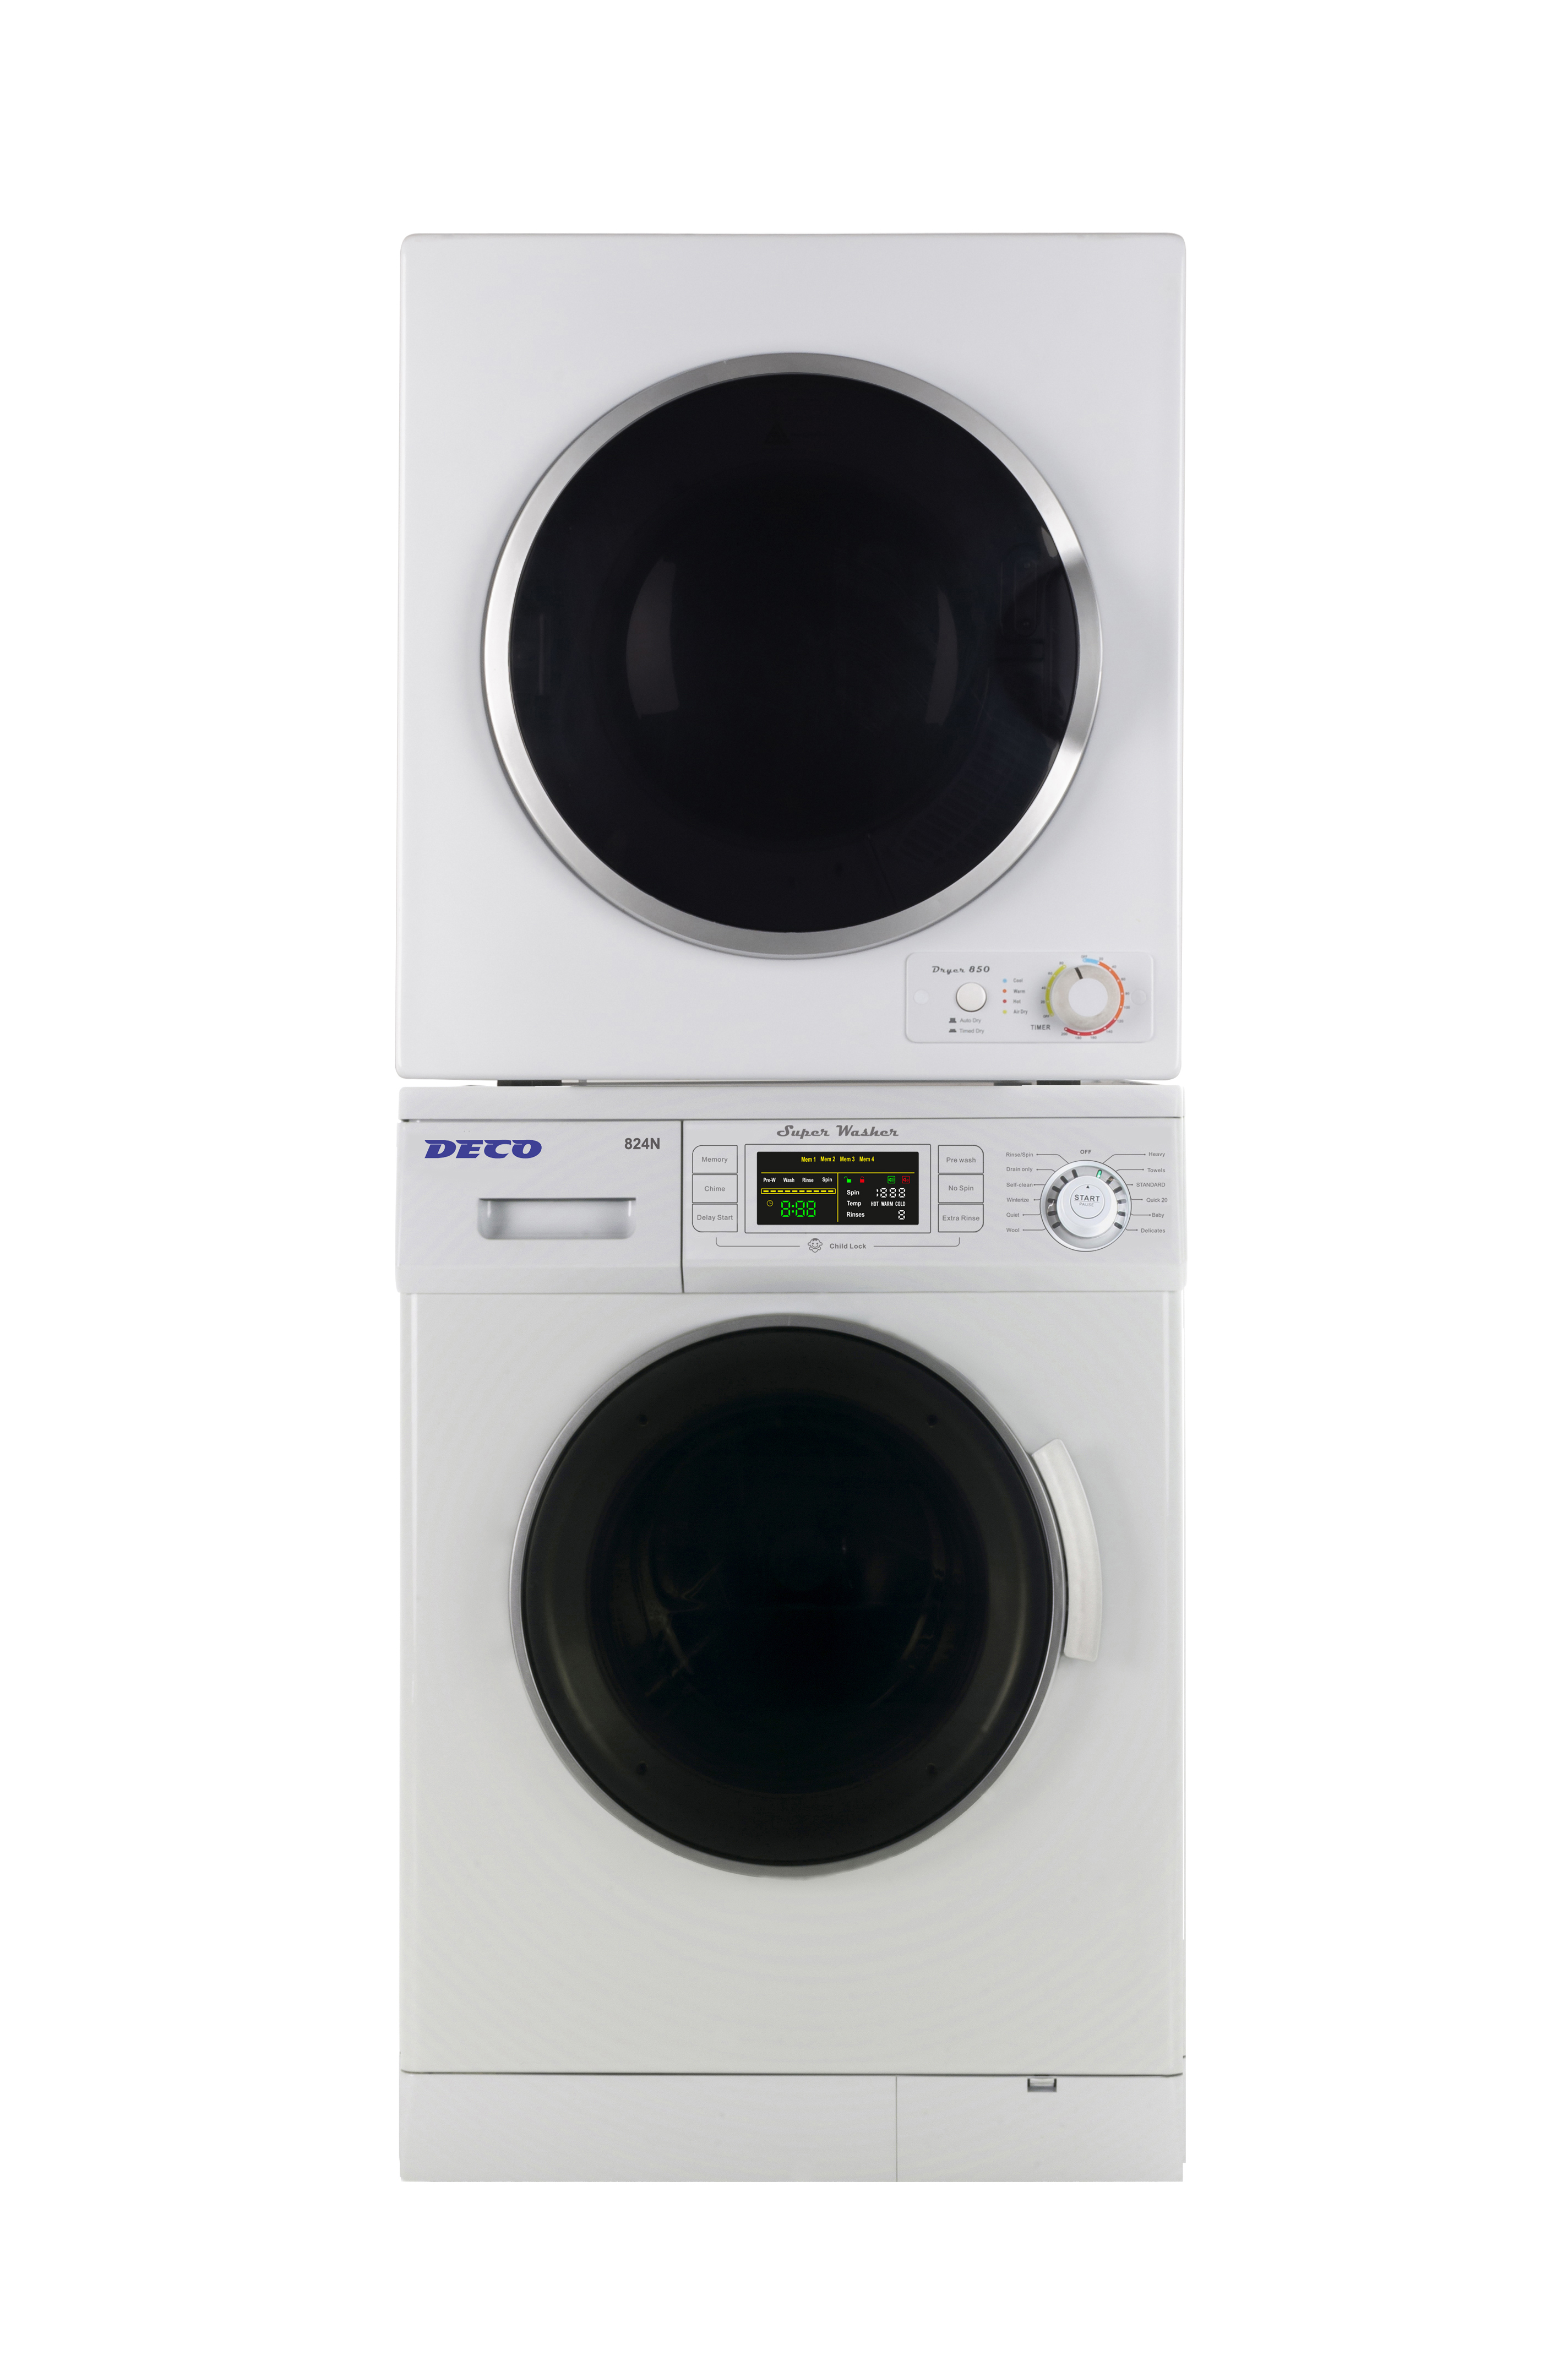 Deco Stackable Washer Dryer Set DW 824 + DD 850 V